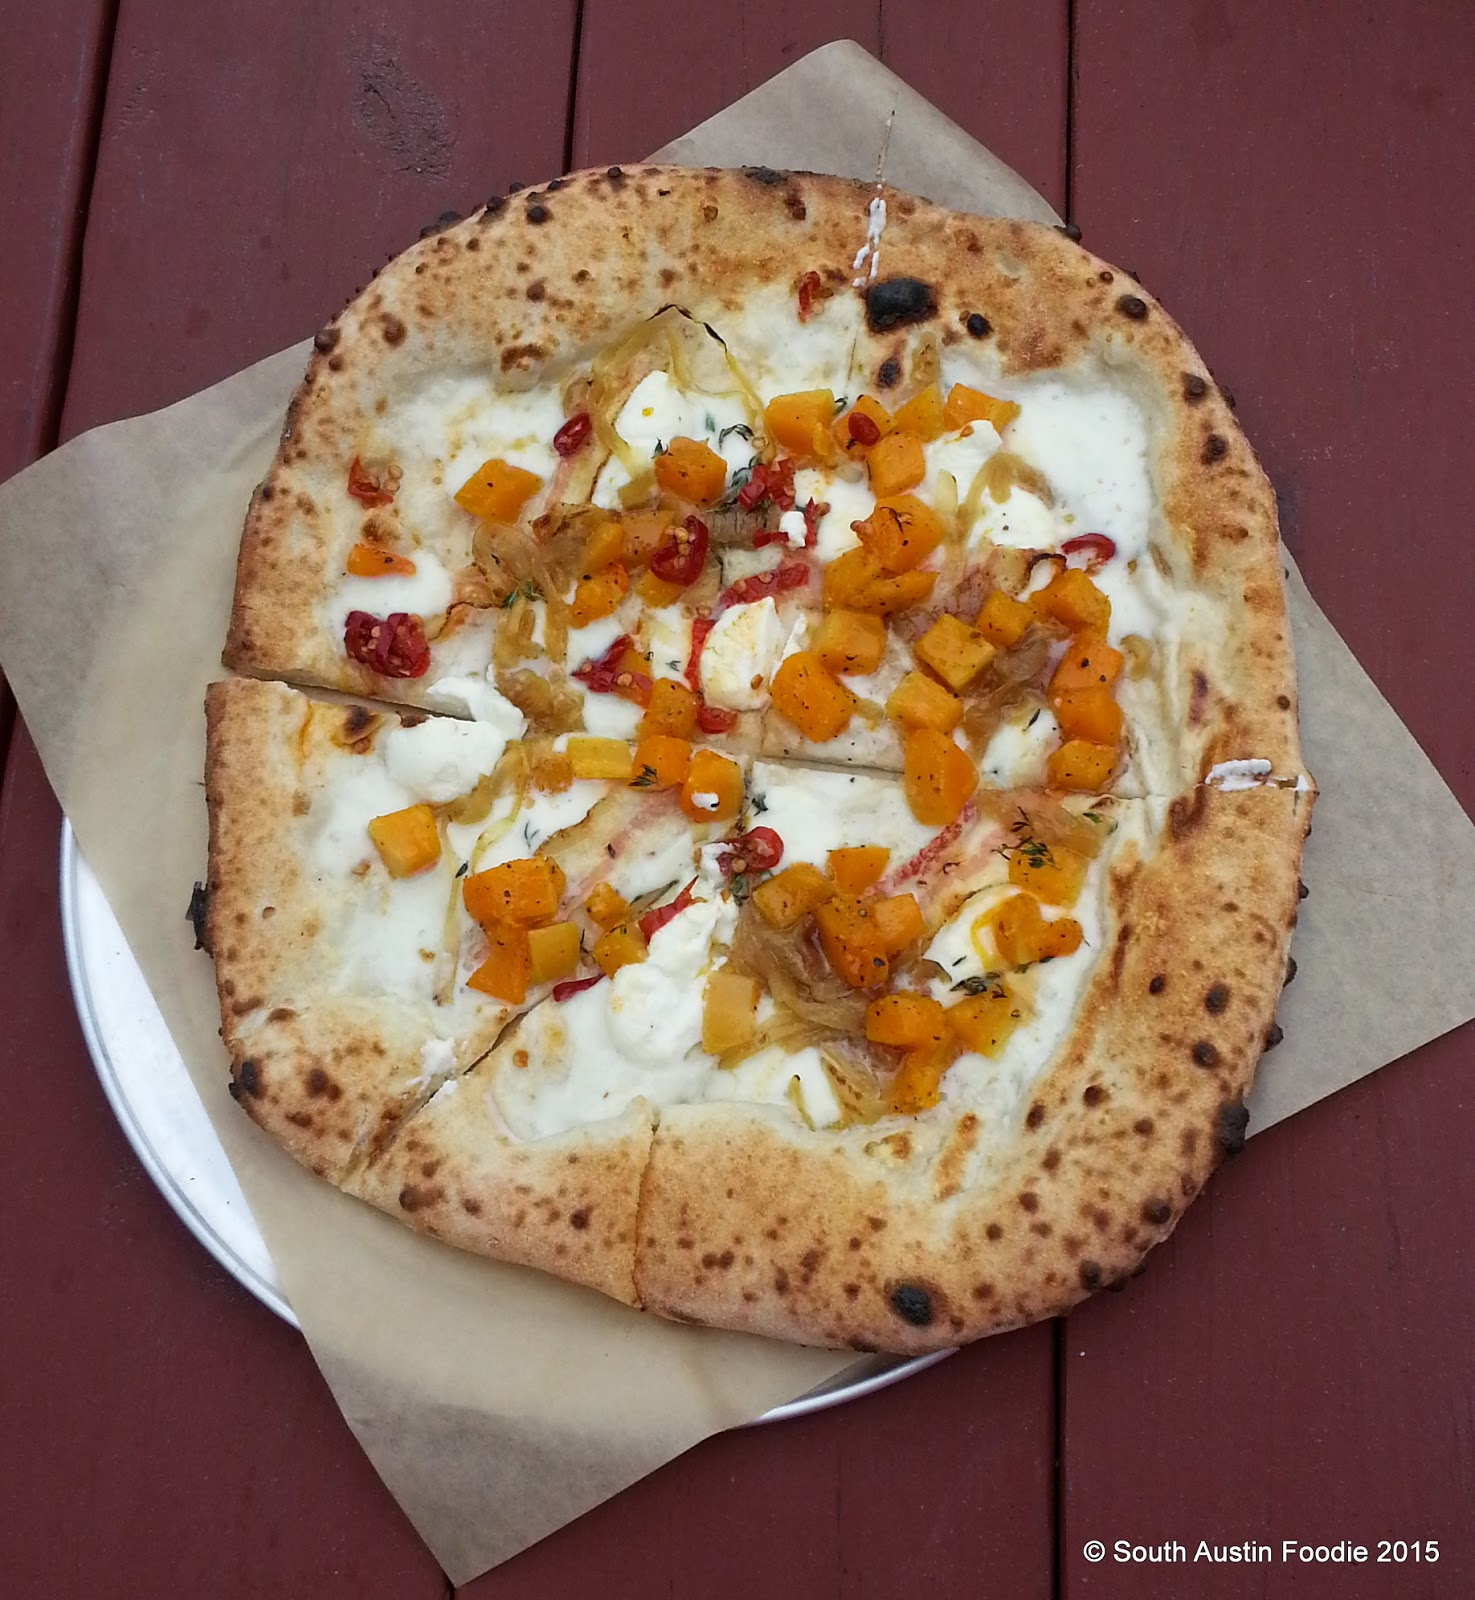 Neapolitan pizza (butternut squash) from 40 North food trailer